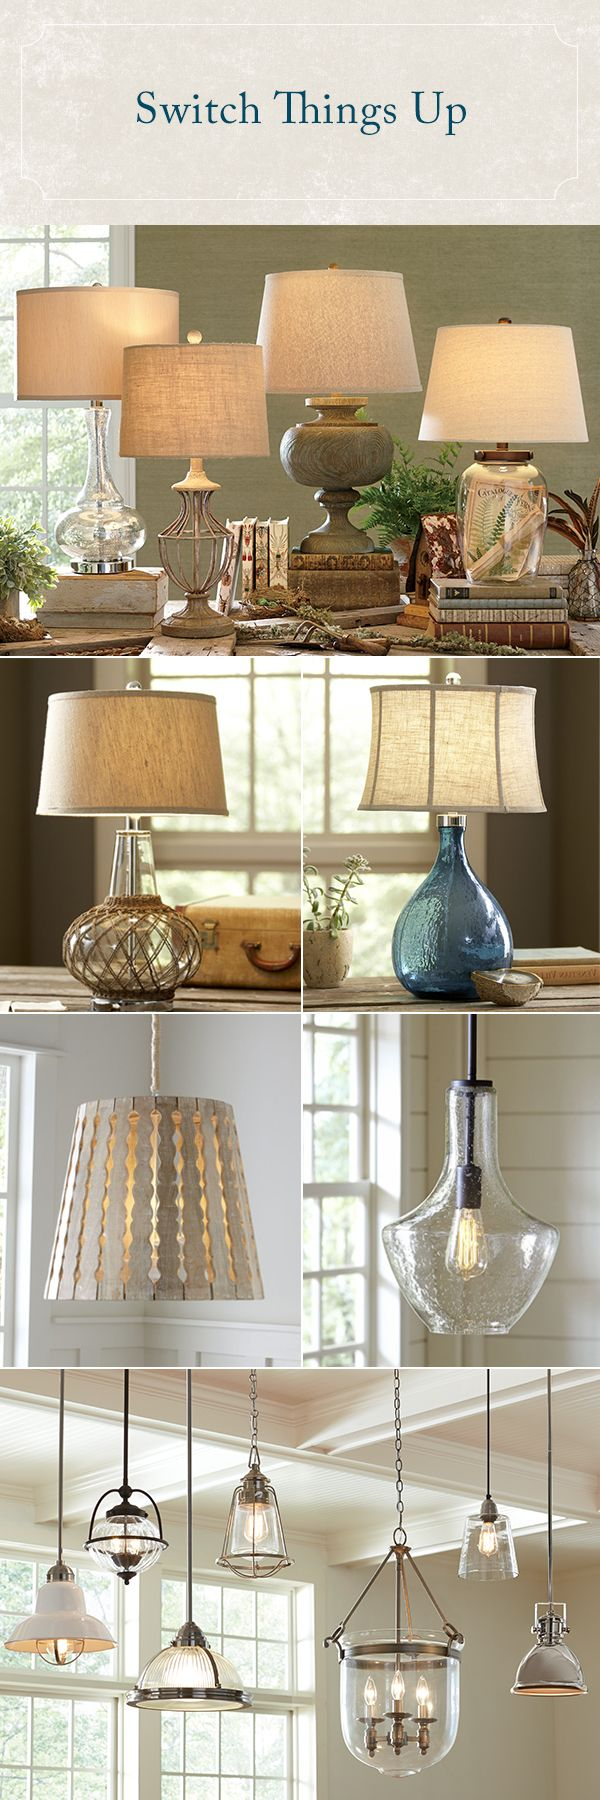 Best 25 reading lamps ideas on pinterest reading lamp for bed looking for some bright decorating ideas whether its a pendant table lamp or geotapseo Images